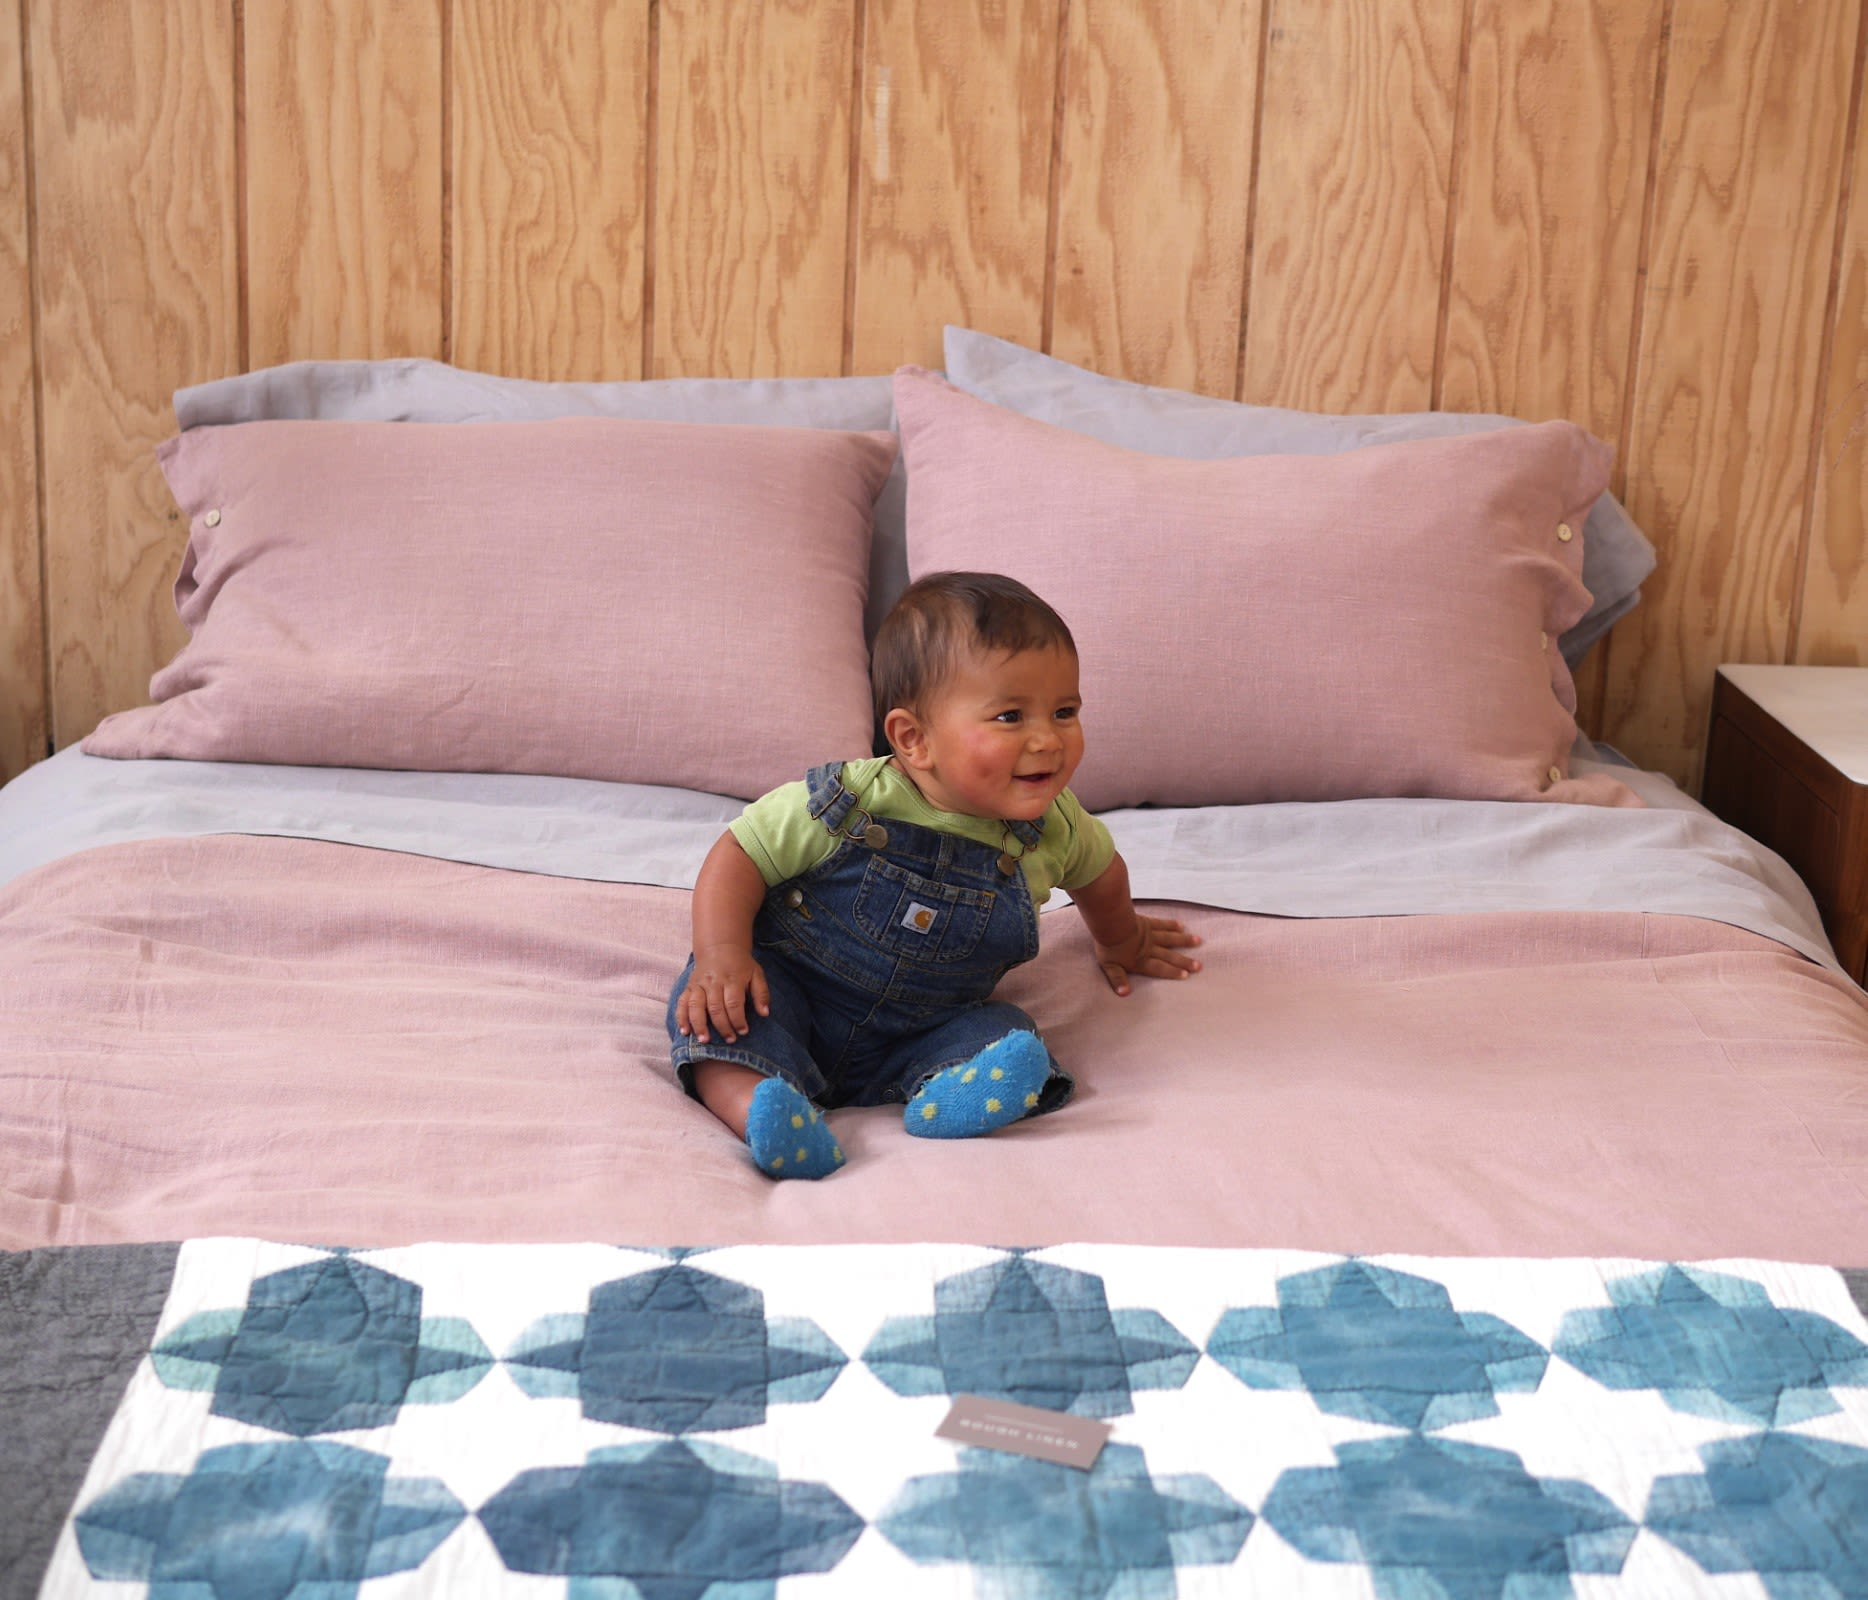 Linens & Bedding by Rough Linen seen at Bay Area Made x Wescover 2019 Design Showcase, Alameda - Linen Bed Makeover